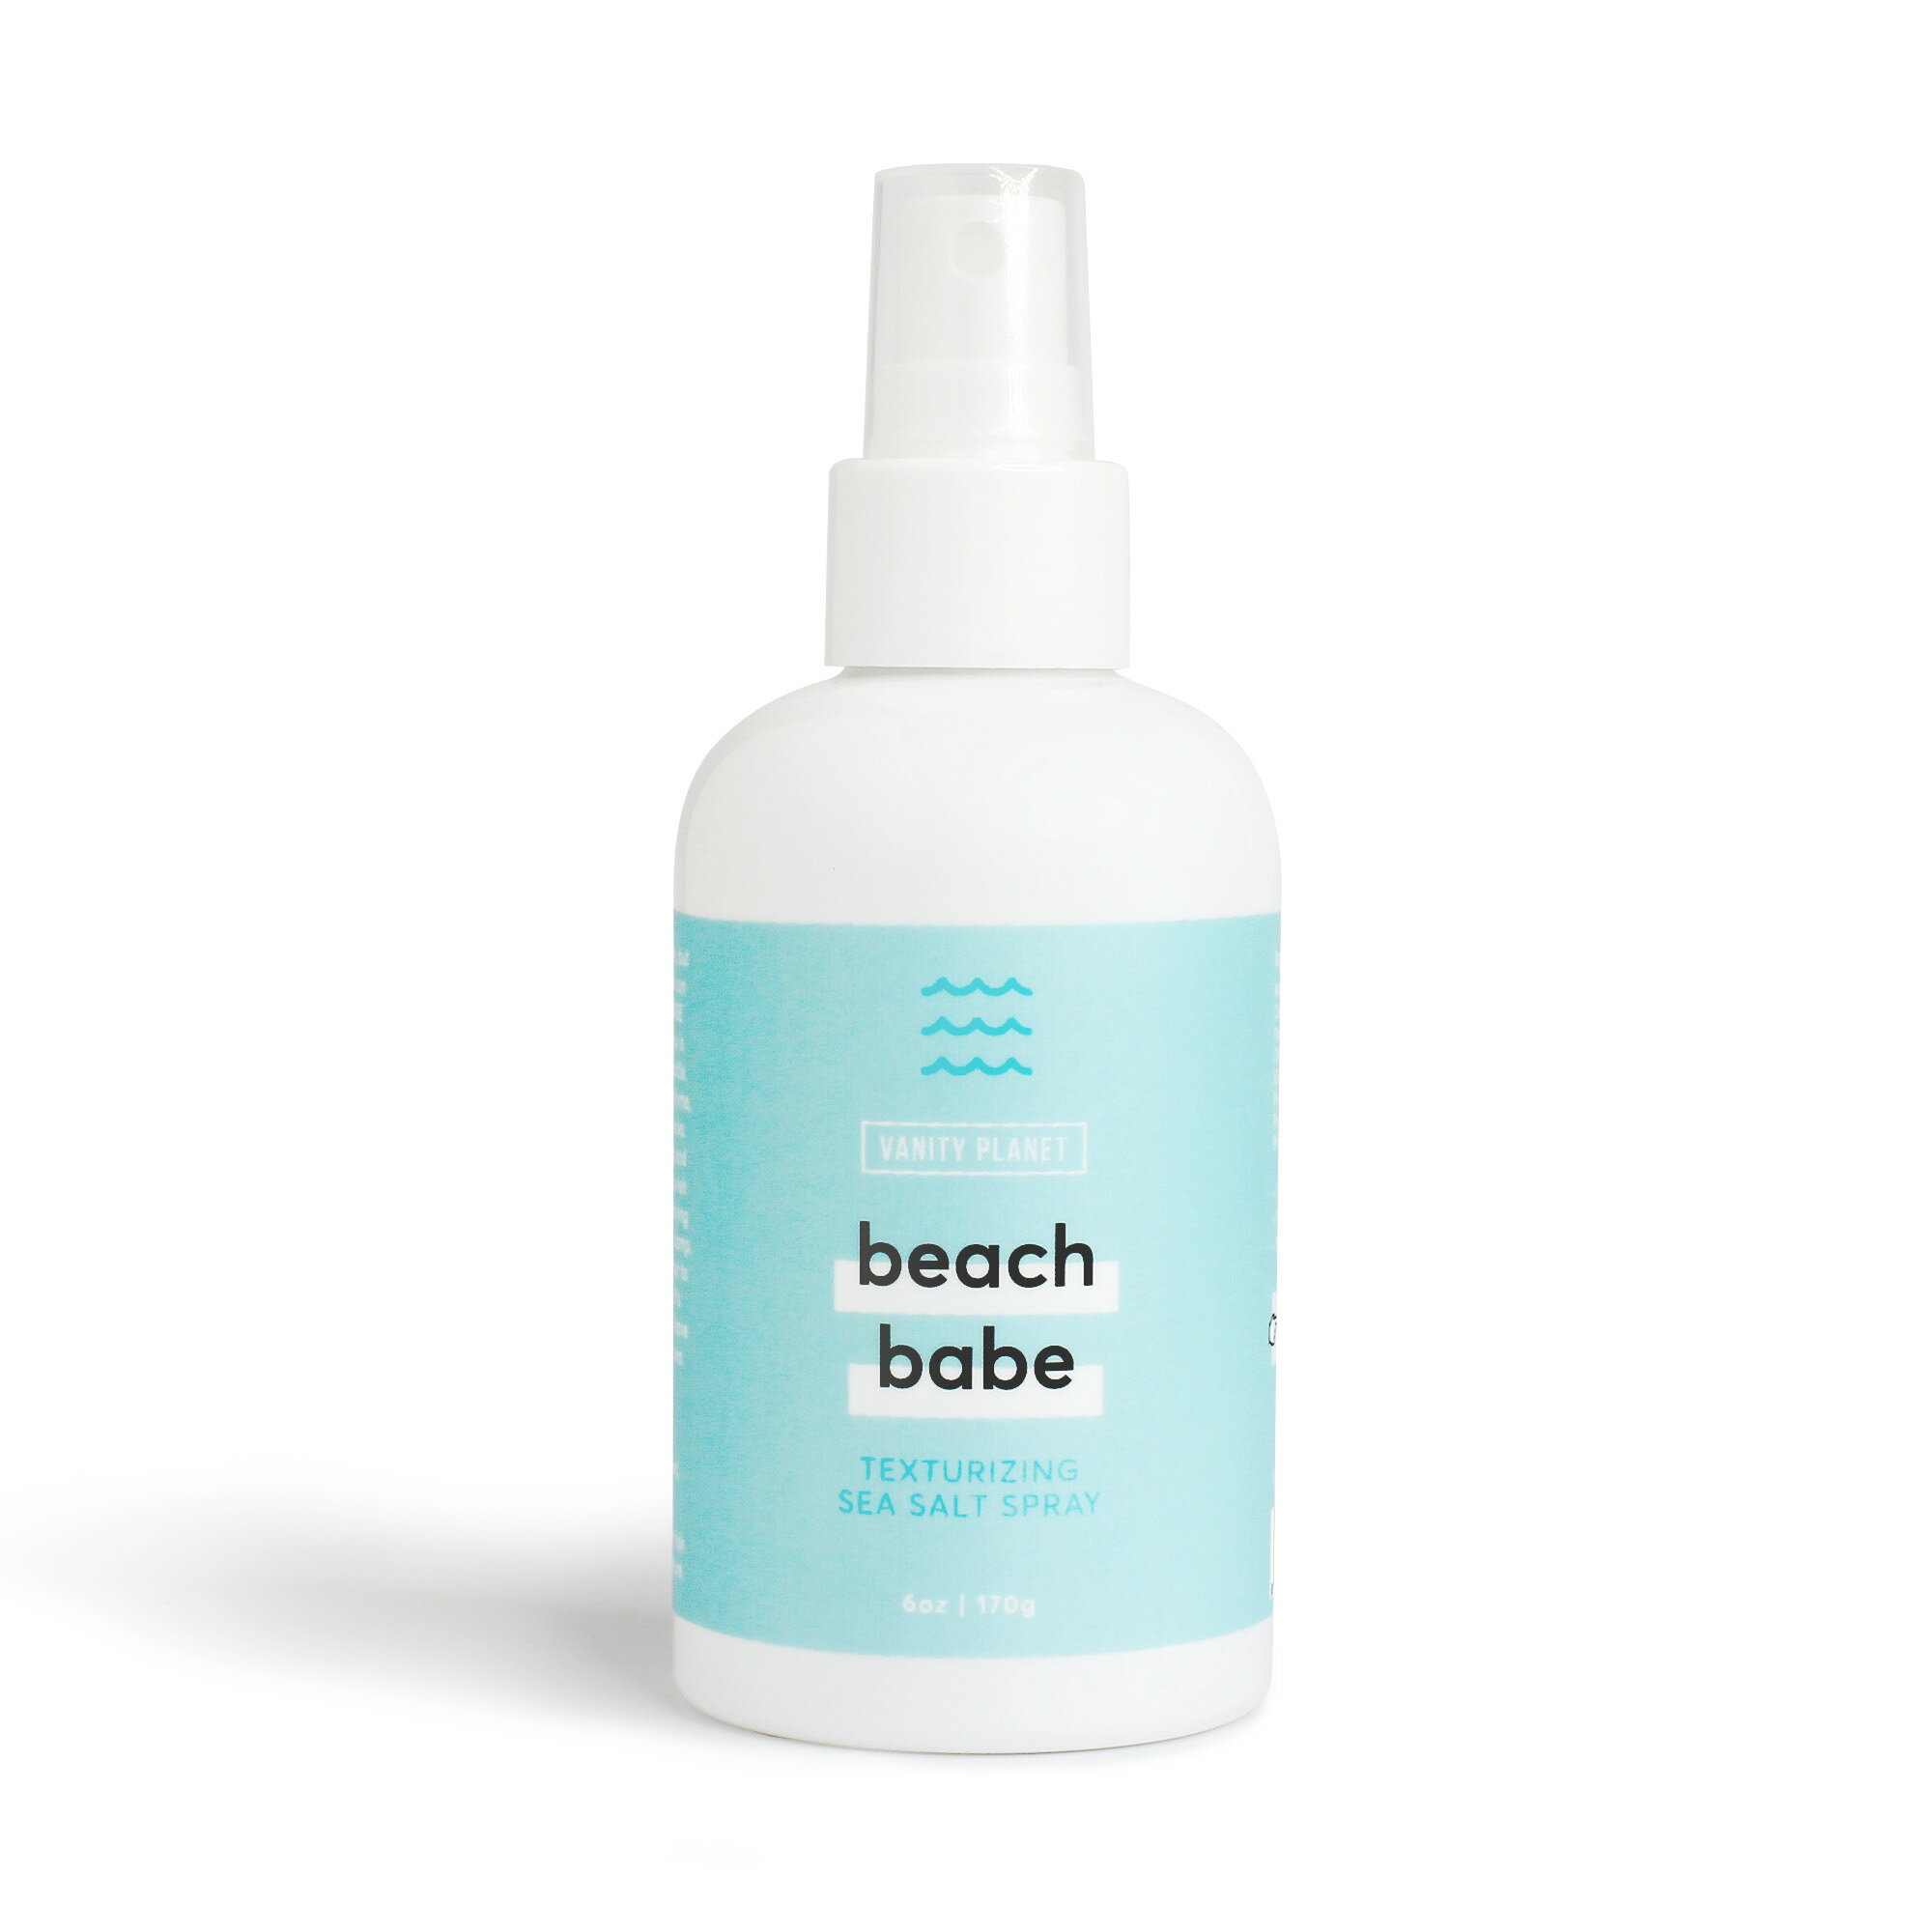 Beach Babe Texturizing Sea Salt Spray 0